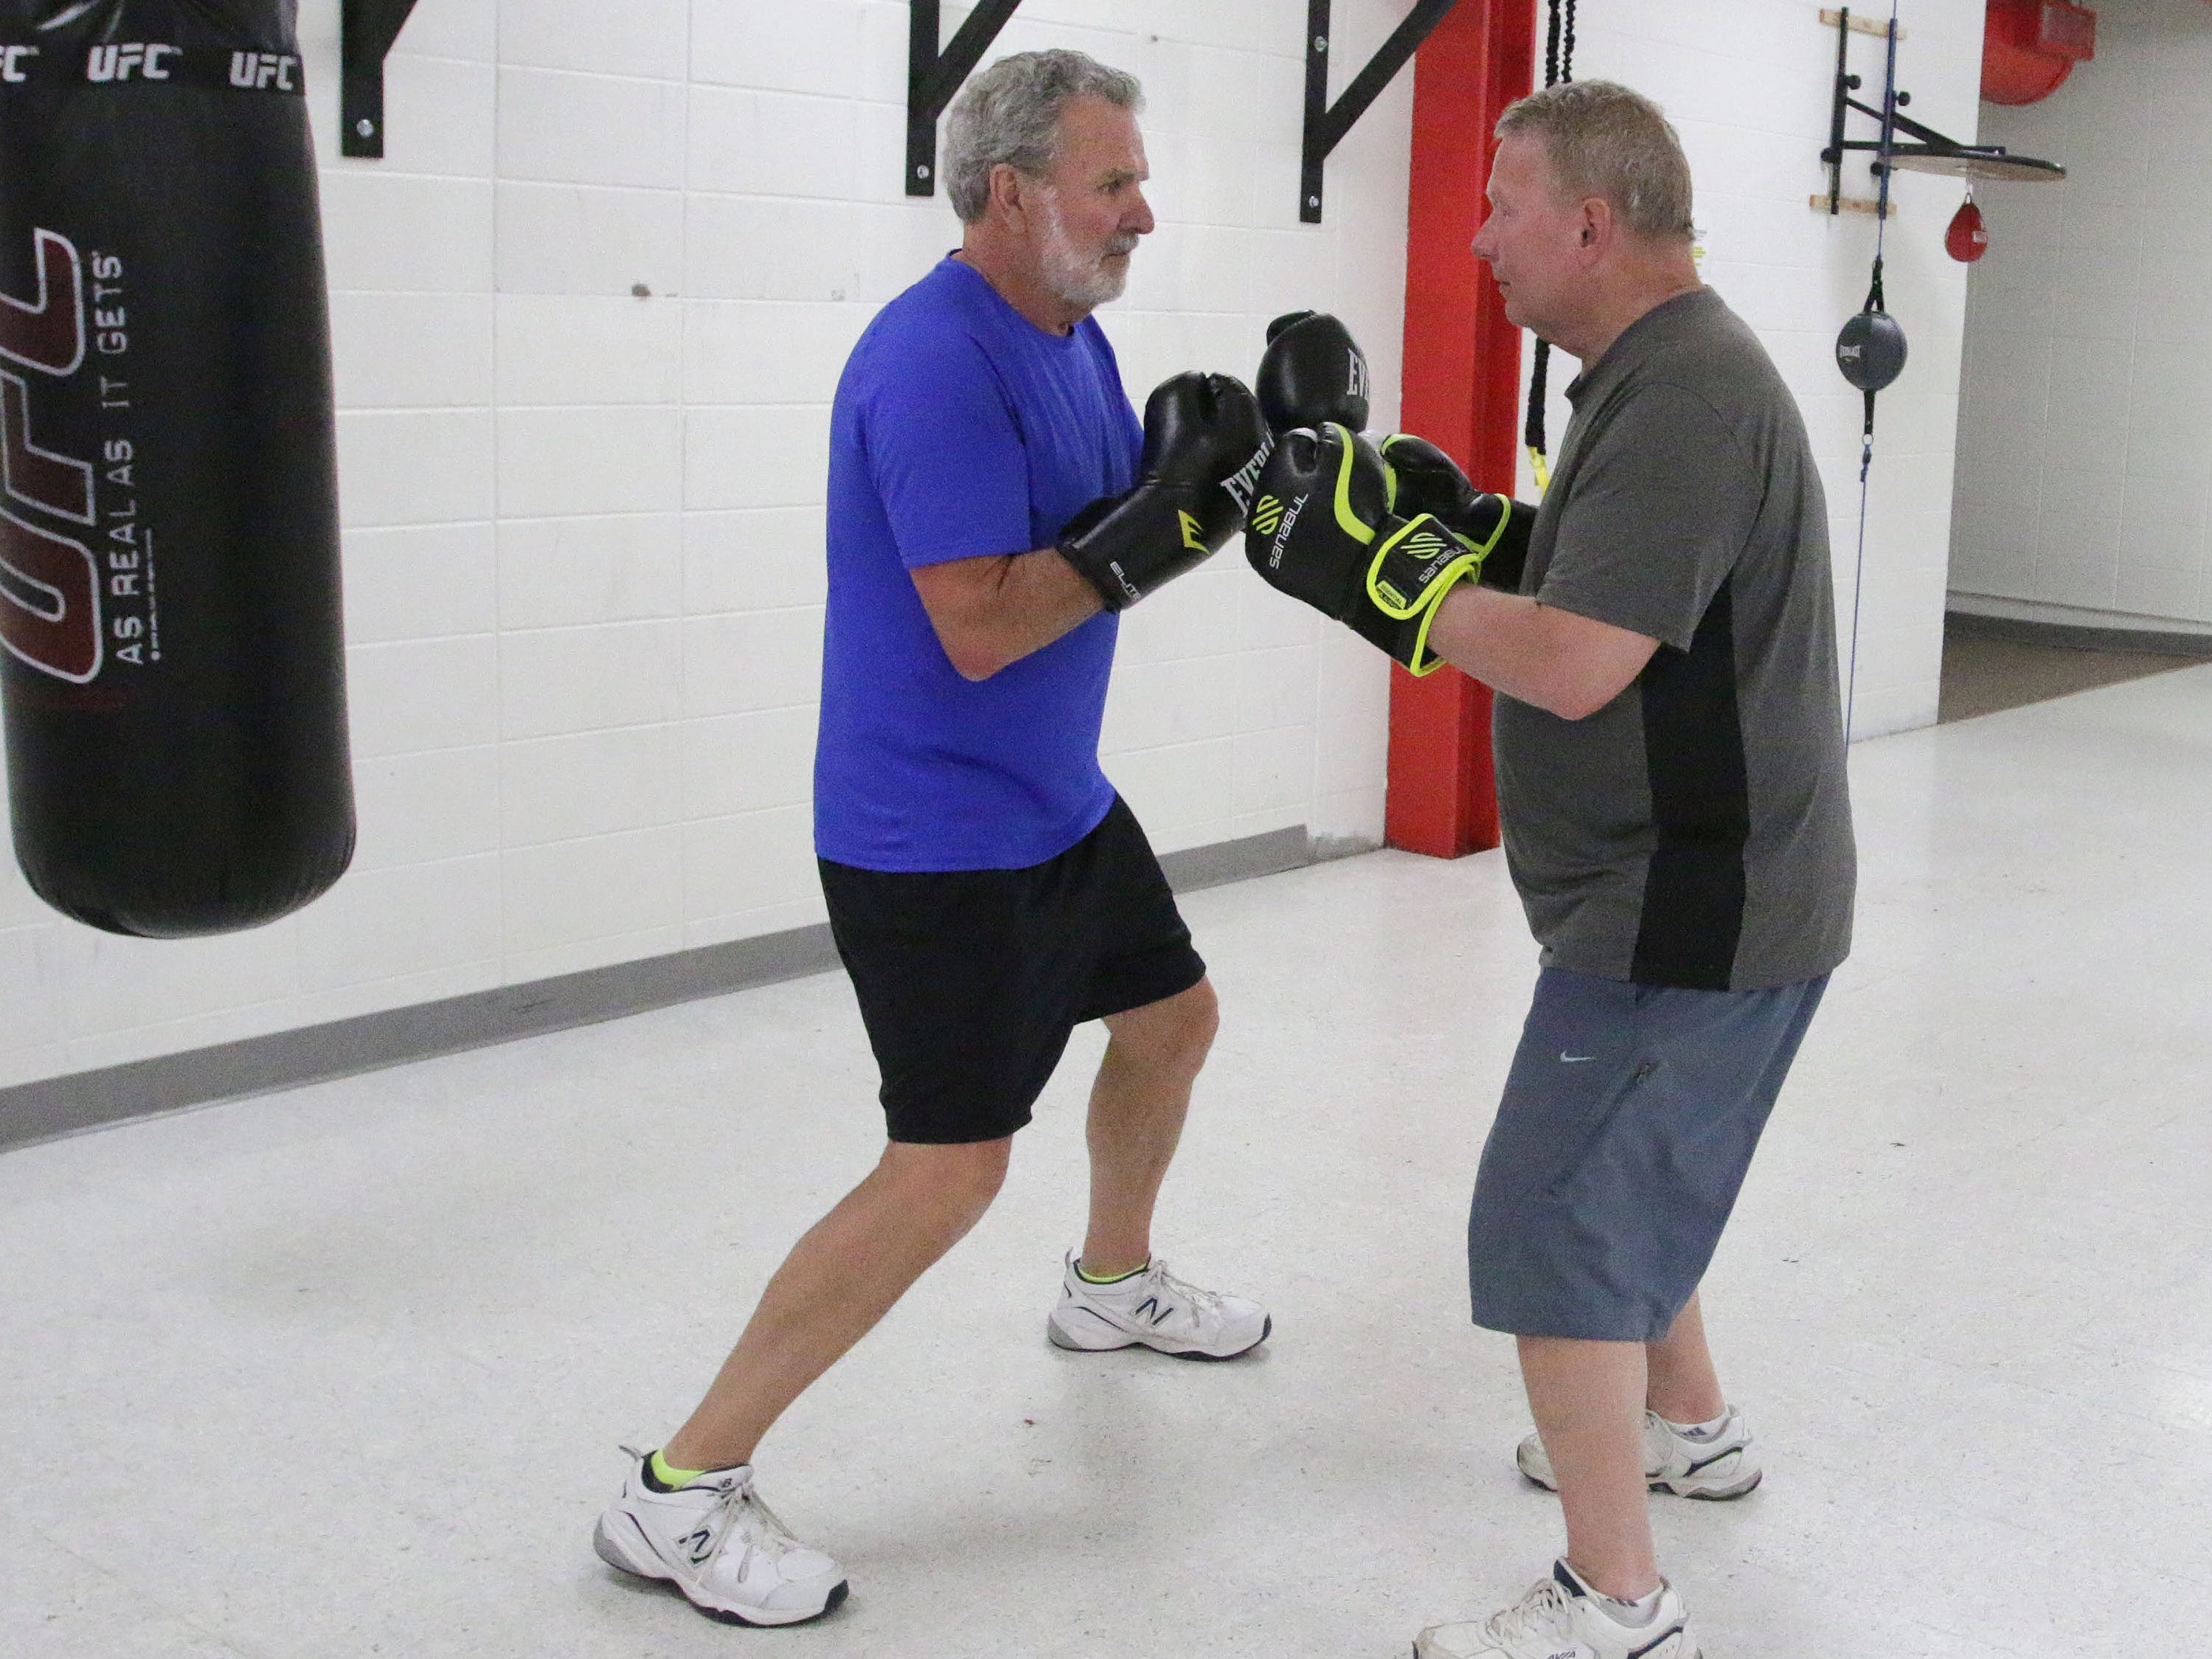 YMCA Fighting Parkinson's class members Larry Boll, left, and Kevin May practice on improving their footwork during the class, Tuesday, March 26, 2019, in Sheboygan, Wis.